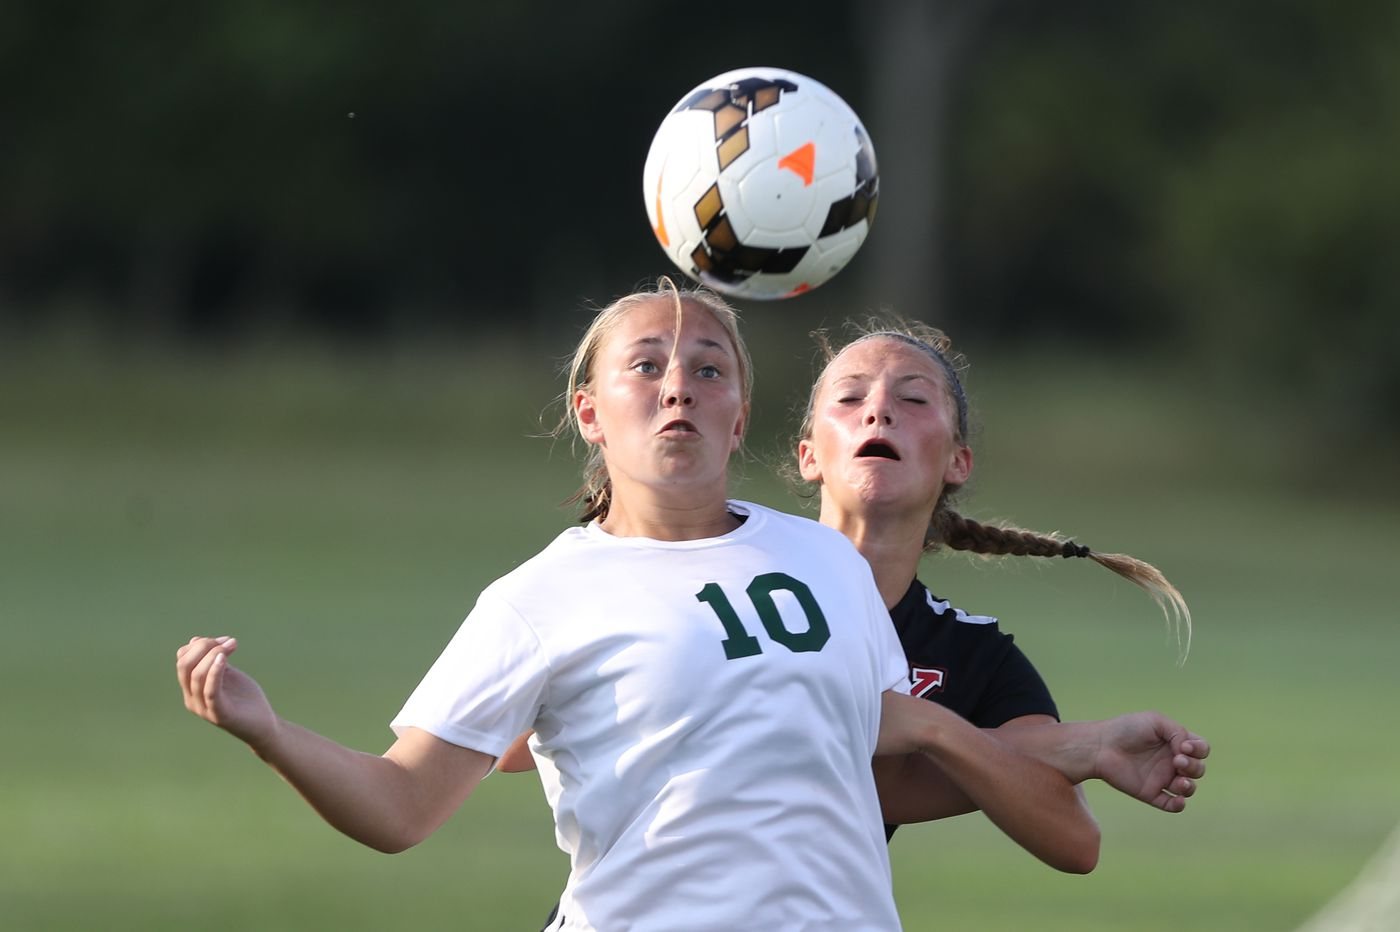 Tuesday's South Jersey roundup: Mackenzie Clement piles up goals and assists as Clearview tops Williamstown